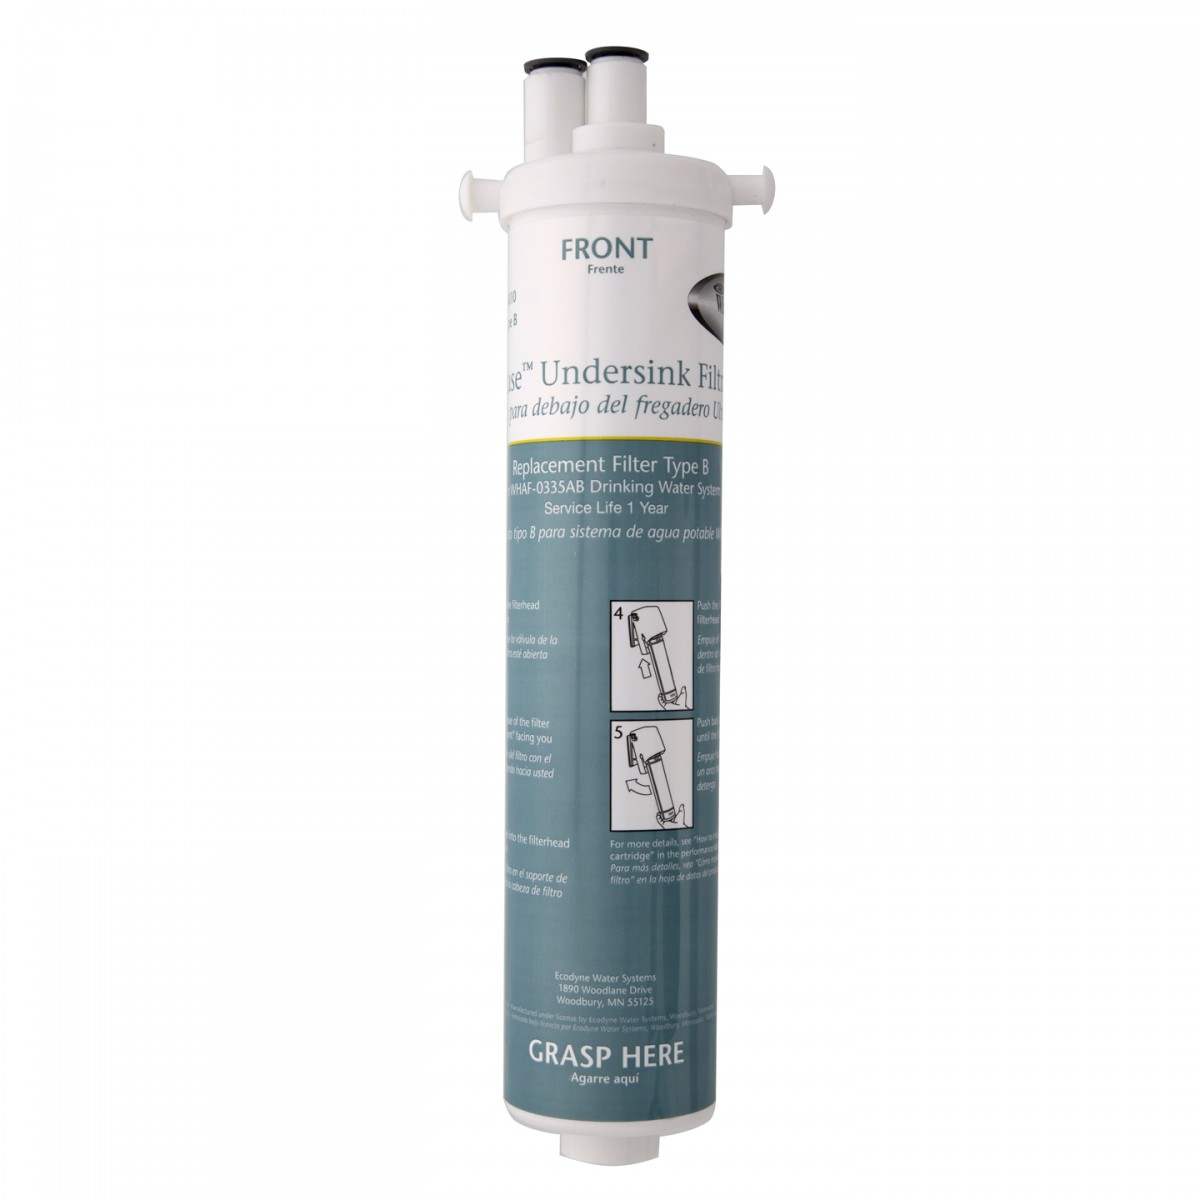 Whirlpool Ultraease Water Filter WHAB-6010 Whirlpool Replacement Unit B Water Filter Cartridge